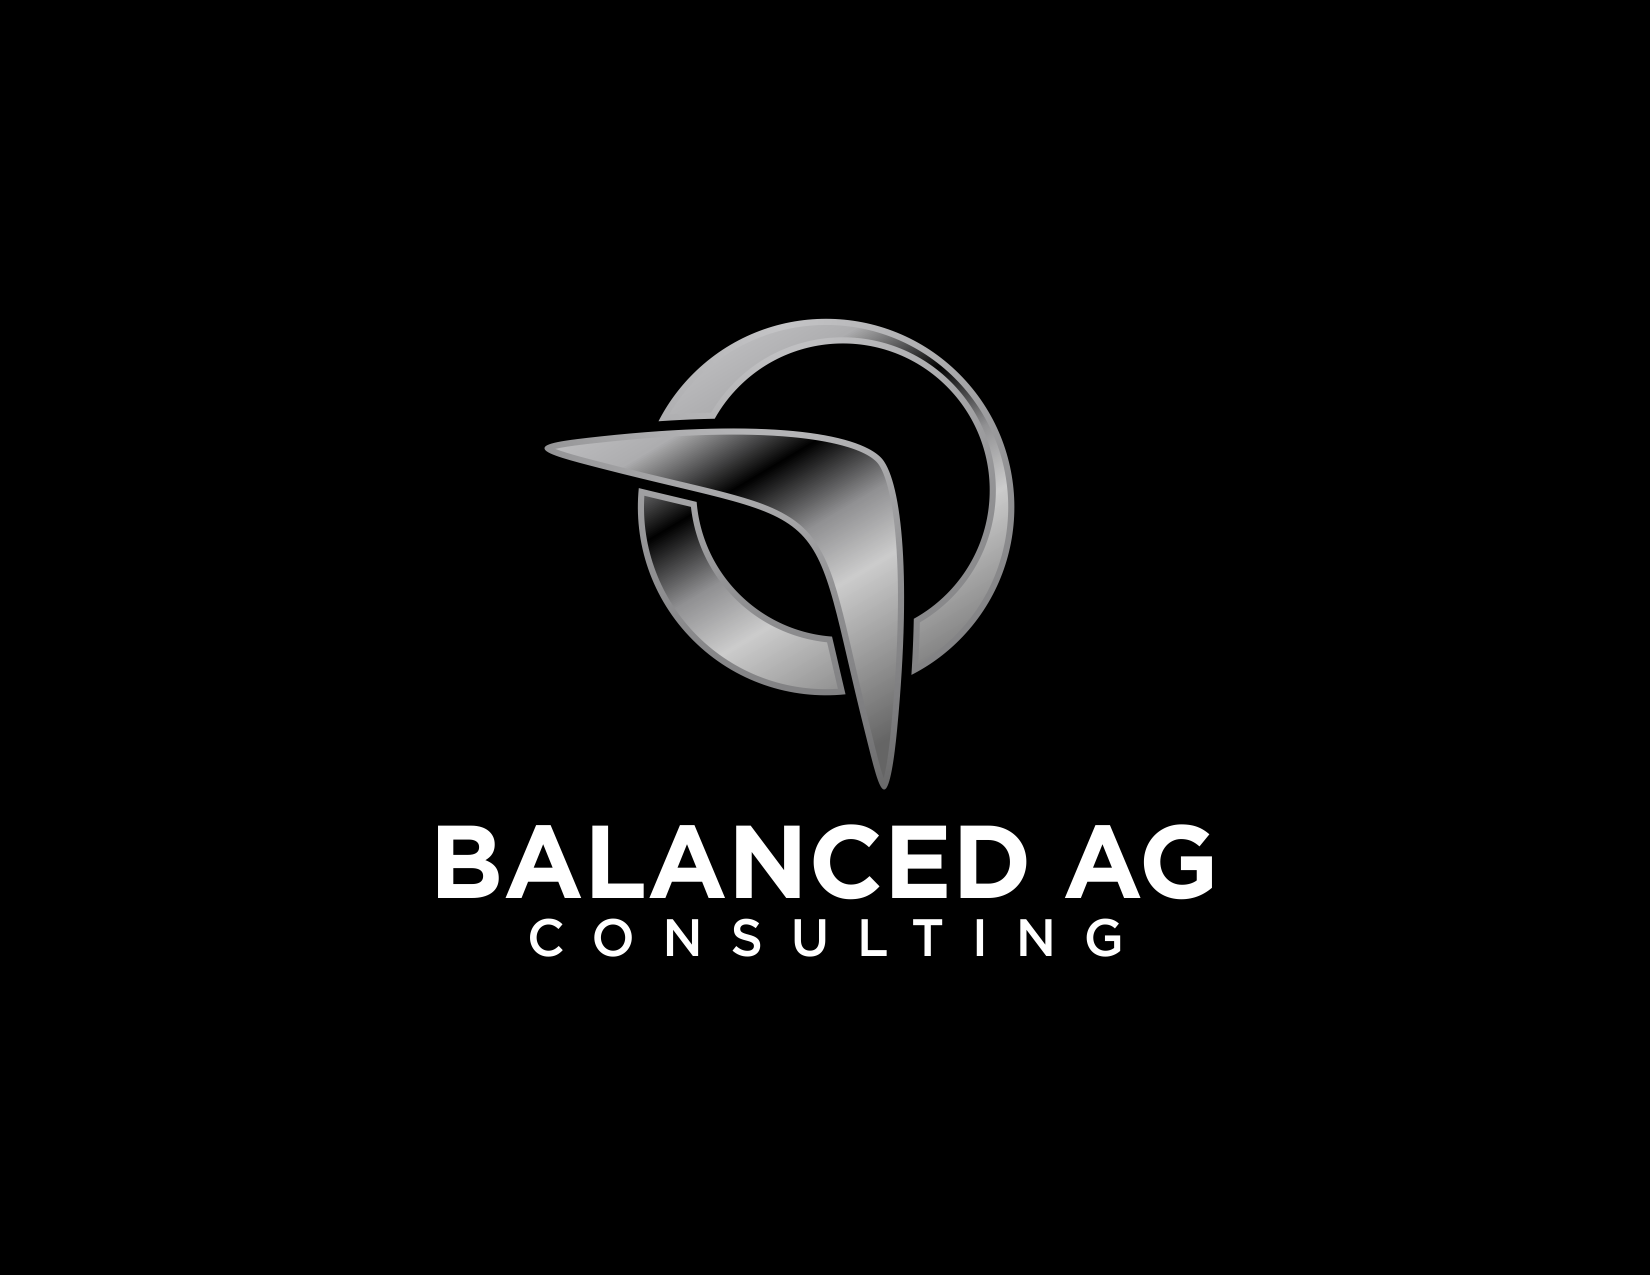 Logo Design by Private User - Entry No. 163 in the Logo Design Contest Captivating Logo Design for Balanced Ag Consulting.